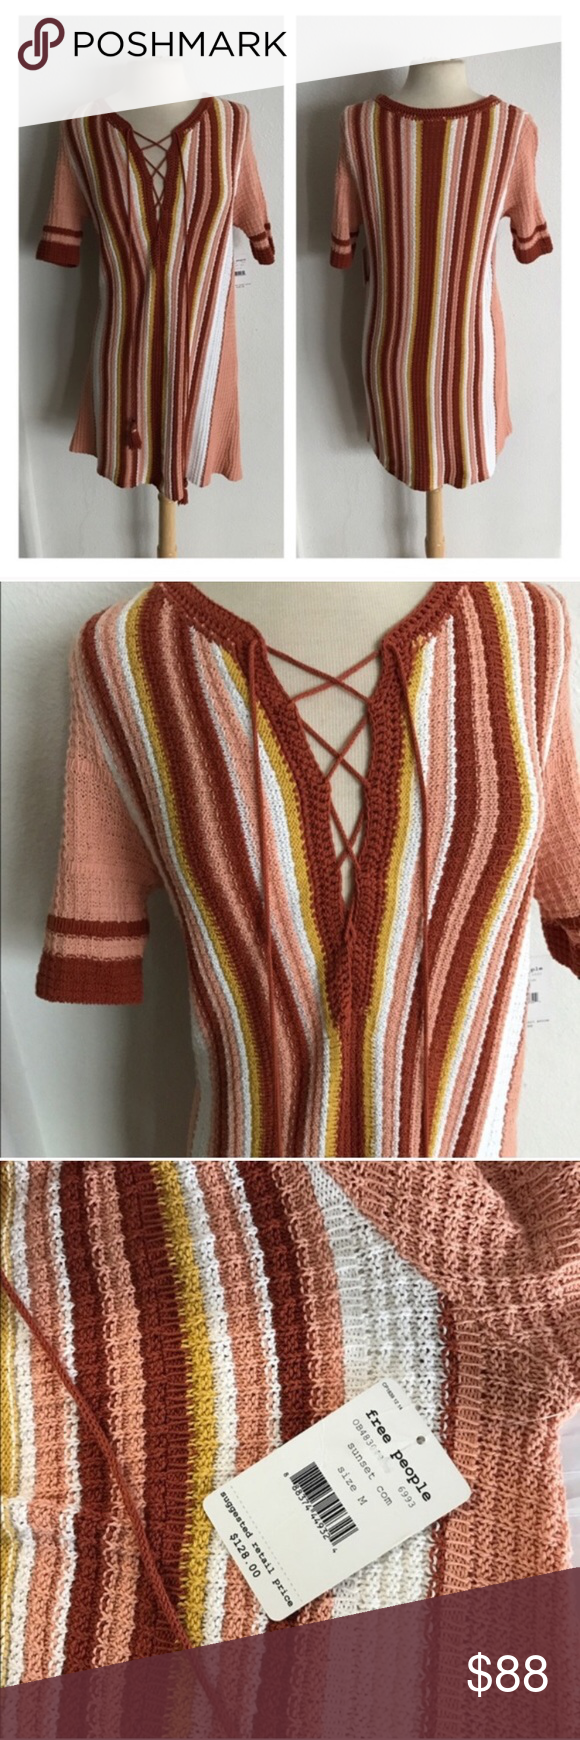 """Free People Lollipop Lace Up Free People Lollipop Lace Up. Size M. Measures 35"""" long with a 38"""" bust. 100% cotton. Form fitting, but also super stretchy! Brand new with tags. Colors are peach, yellow, white, red.  🚫NO TRADES 💲Reasonable offers accepted 💰Ask about bundle discounts Free People Dresses Mini"""